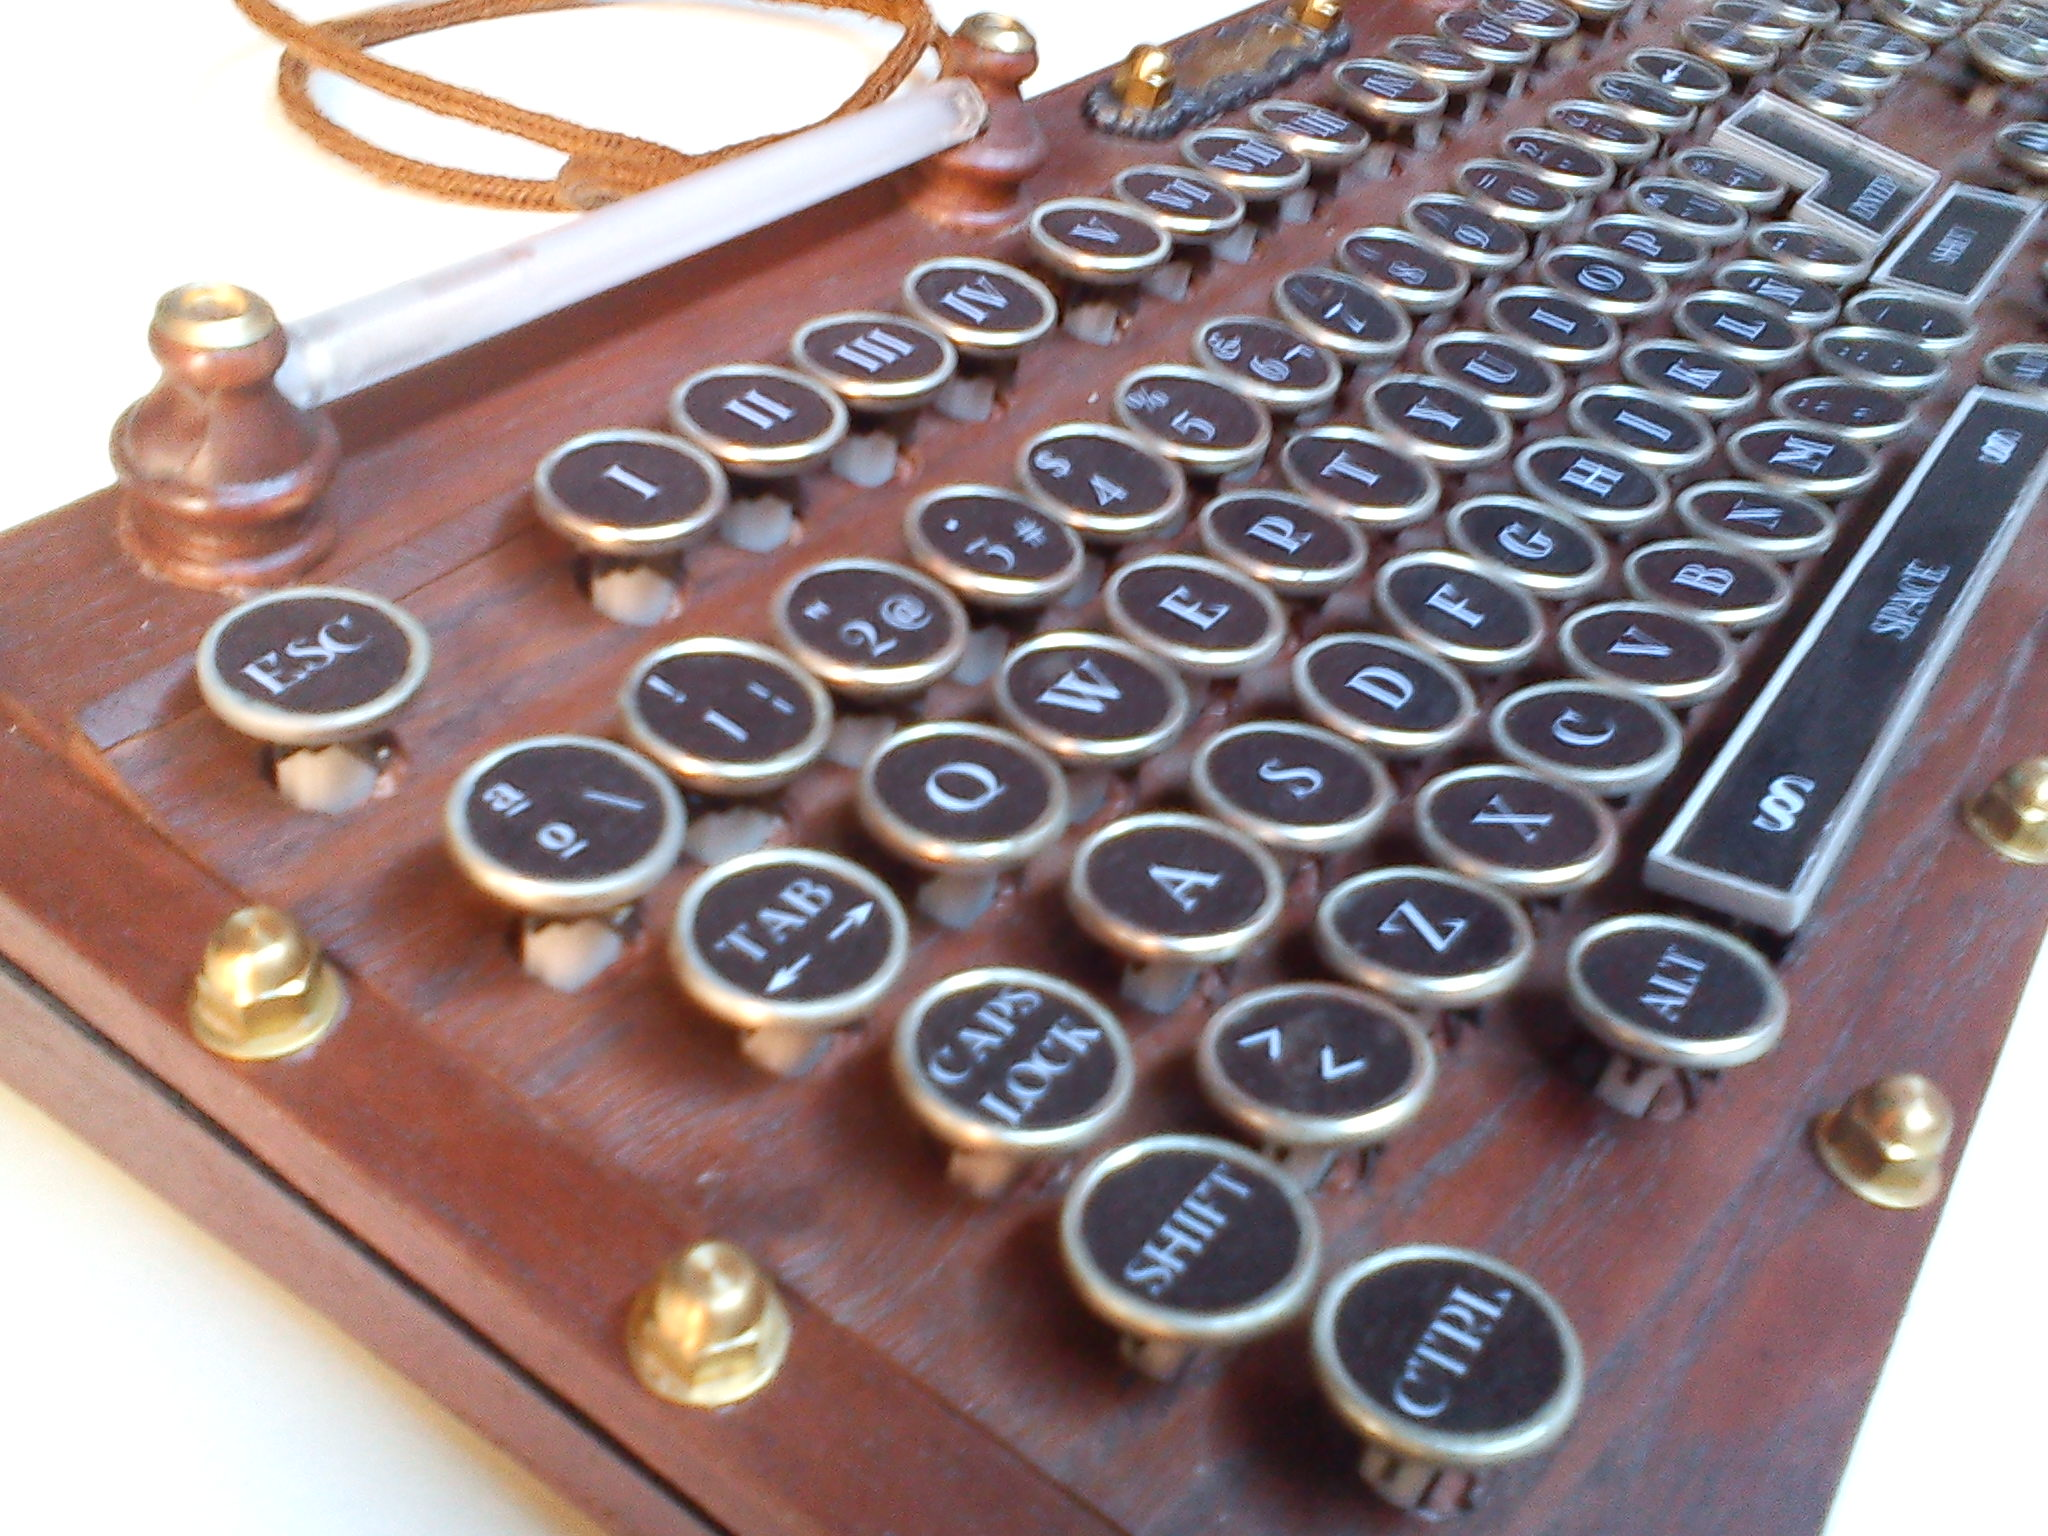 My Steampunk Keyboard version